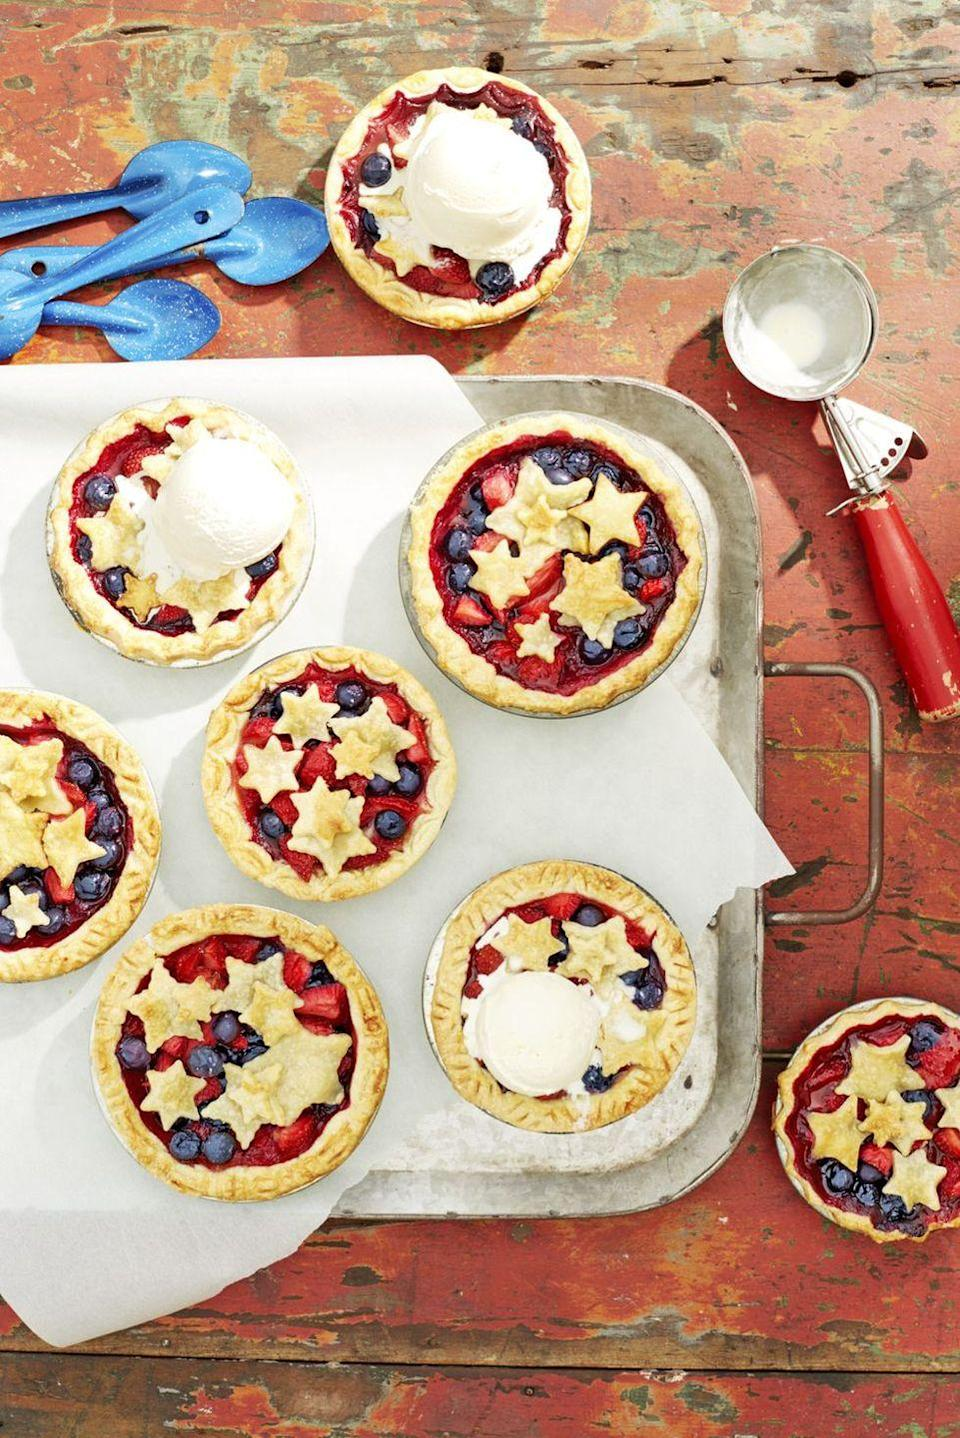 """<p>Because the smaller they are, the more you can eat. Top these triple-berry pies with a scoop of ice cream to cool down after a day in the sun.</p><p><a class=""""link rapid-noclick-resp"""" href=""""https://www.amazon.com/Fox-Run-3626-Cookie-Stainless/dp/B001ET5YRU?tag=syn-yahoo-20&ascsubtag=%5Bartid%7C10055.g.3483%5Bsrc%7Cyahoo-us"""" rel=""""nofollow noopener"""" target=""""_blank"""" data-ylk=""""slk:SHOP STAR COOKIE CUTTERS"""">SHOP STAR COOKIE CUTTERS</a></p><p><em><a href=""""https://www.countryliving.com/food-drinks/a21348015/mini-stars-berry-pies-recipe/"""" rel=""""nofollow noopener"""" target=""""_blank"""" data-ylk=""""slk:Get the recipe from Country Living »"""" class=""""link rapid-noclick-resp"""">Get the recipe from Country Living »</a></em></p>"""